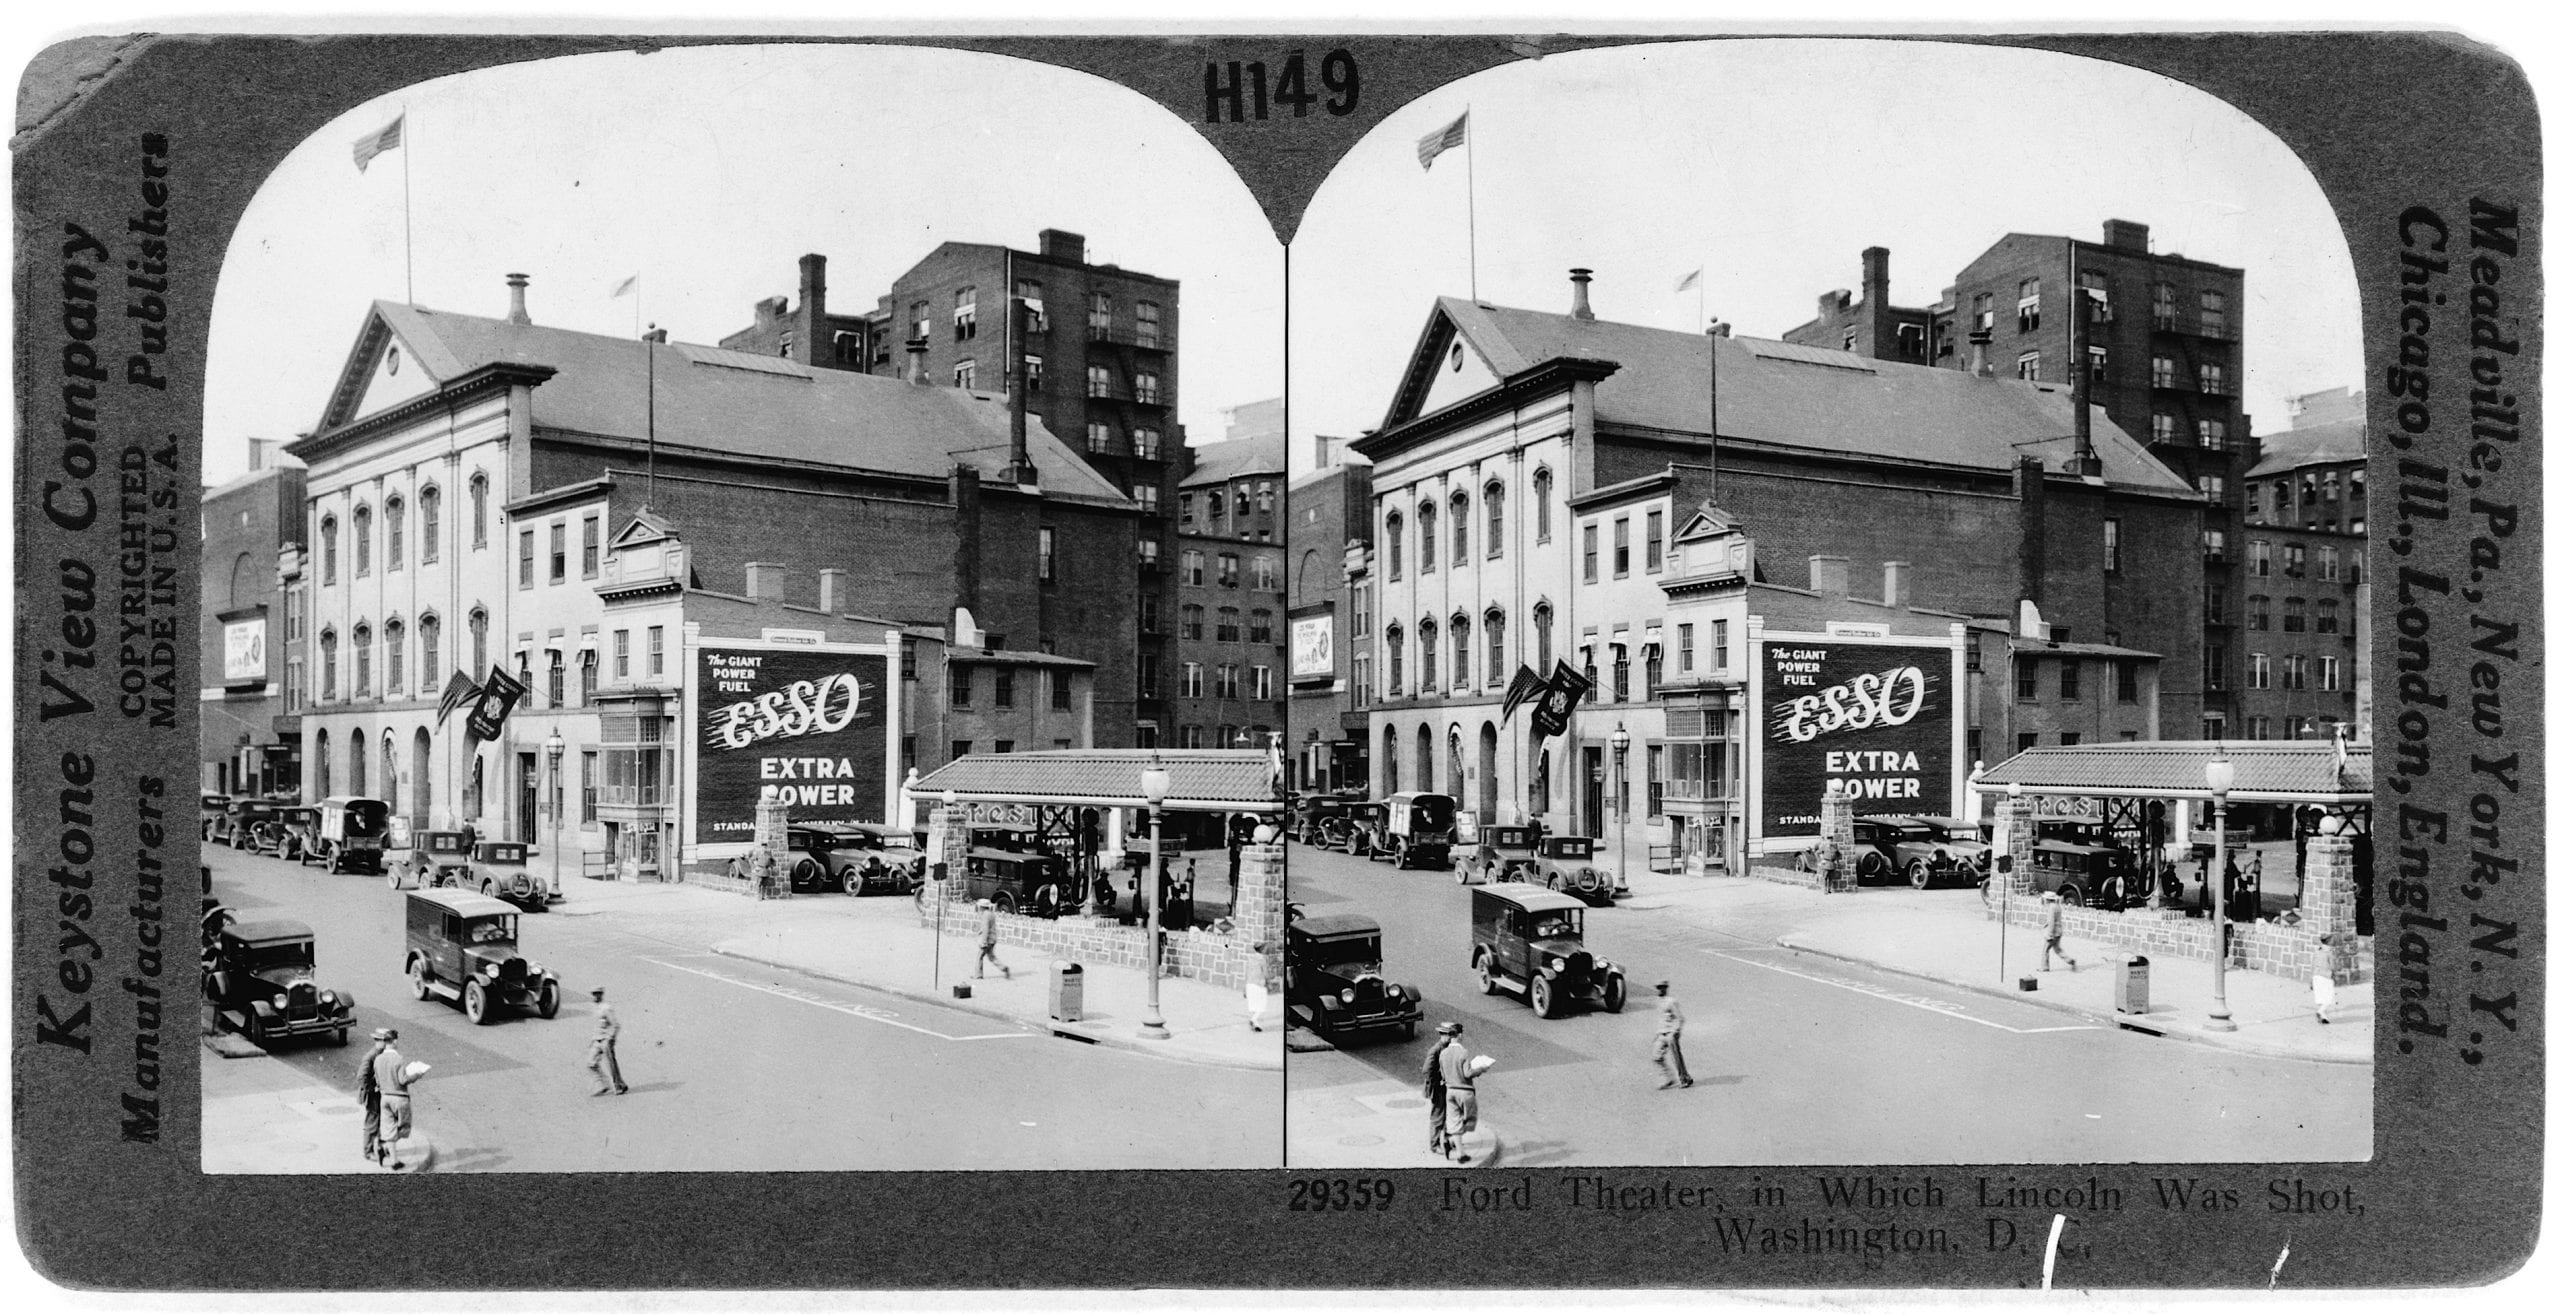 Ford's Theatre Stereograph From 1927